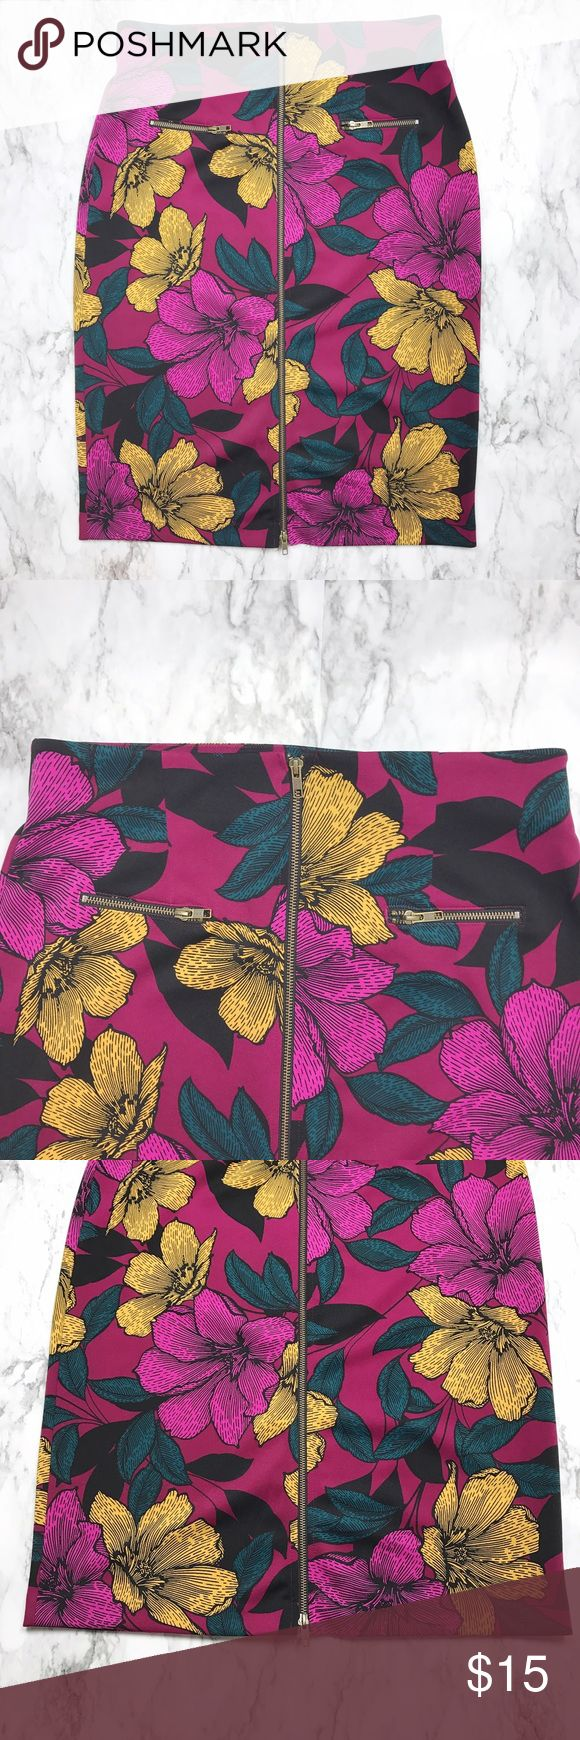 """Plus 14 Floral Pencil Skirt Worthington Fuchsia Gorgeous bold floral print Worthington Plus size 14 pencil skirt.  Pretty purple magenta like color with teal, gold and black in the pattern.  Zips from top to bottom and has two faux zipped pockets on the front.  MEASUREMENTS  Length 27""""  Waist 32"""" Worthington Skirts Pencil"""